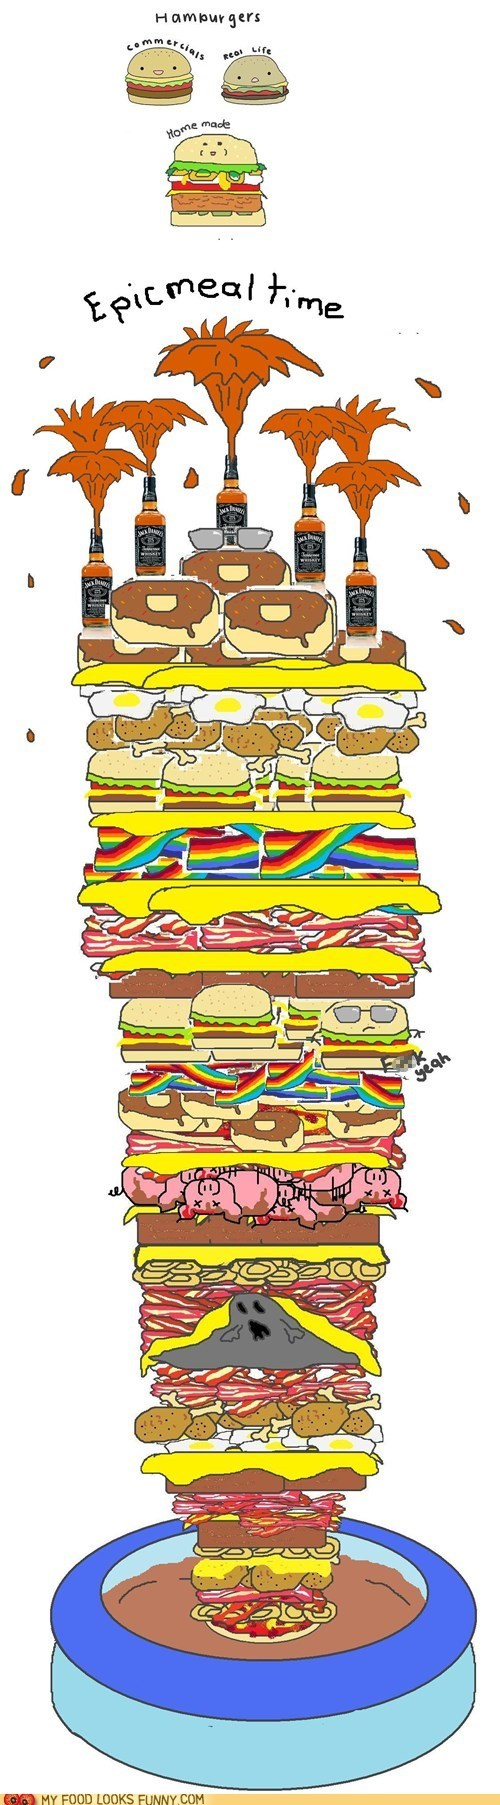 best of the week,burgers,epic meal time,hamburgers,taxonomy,types